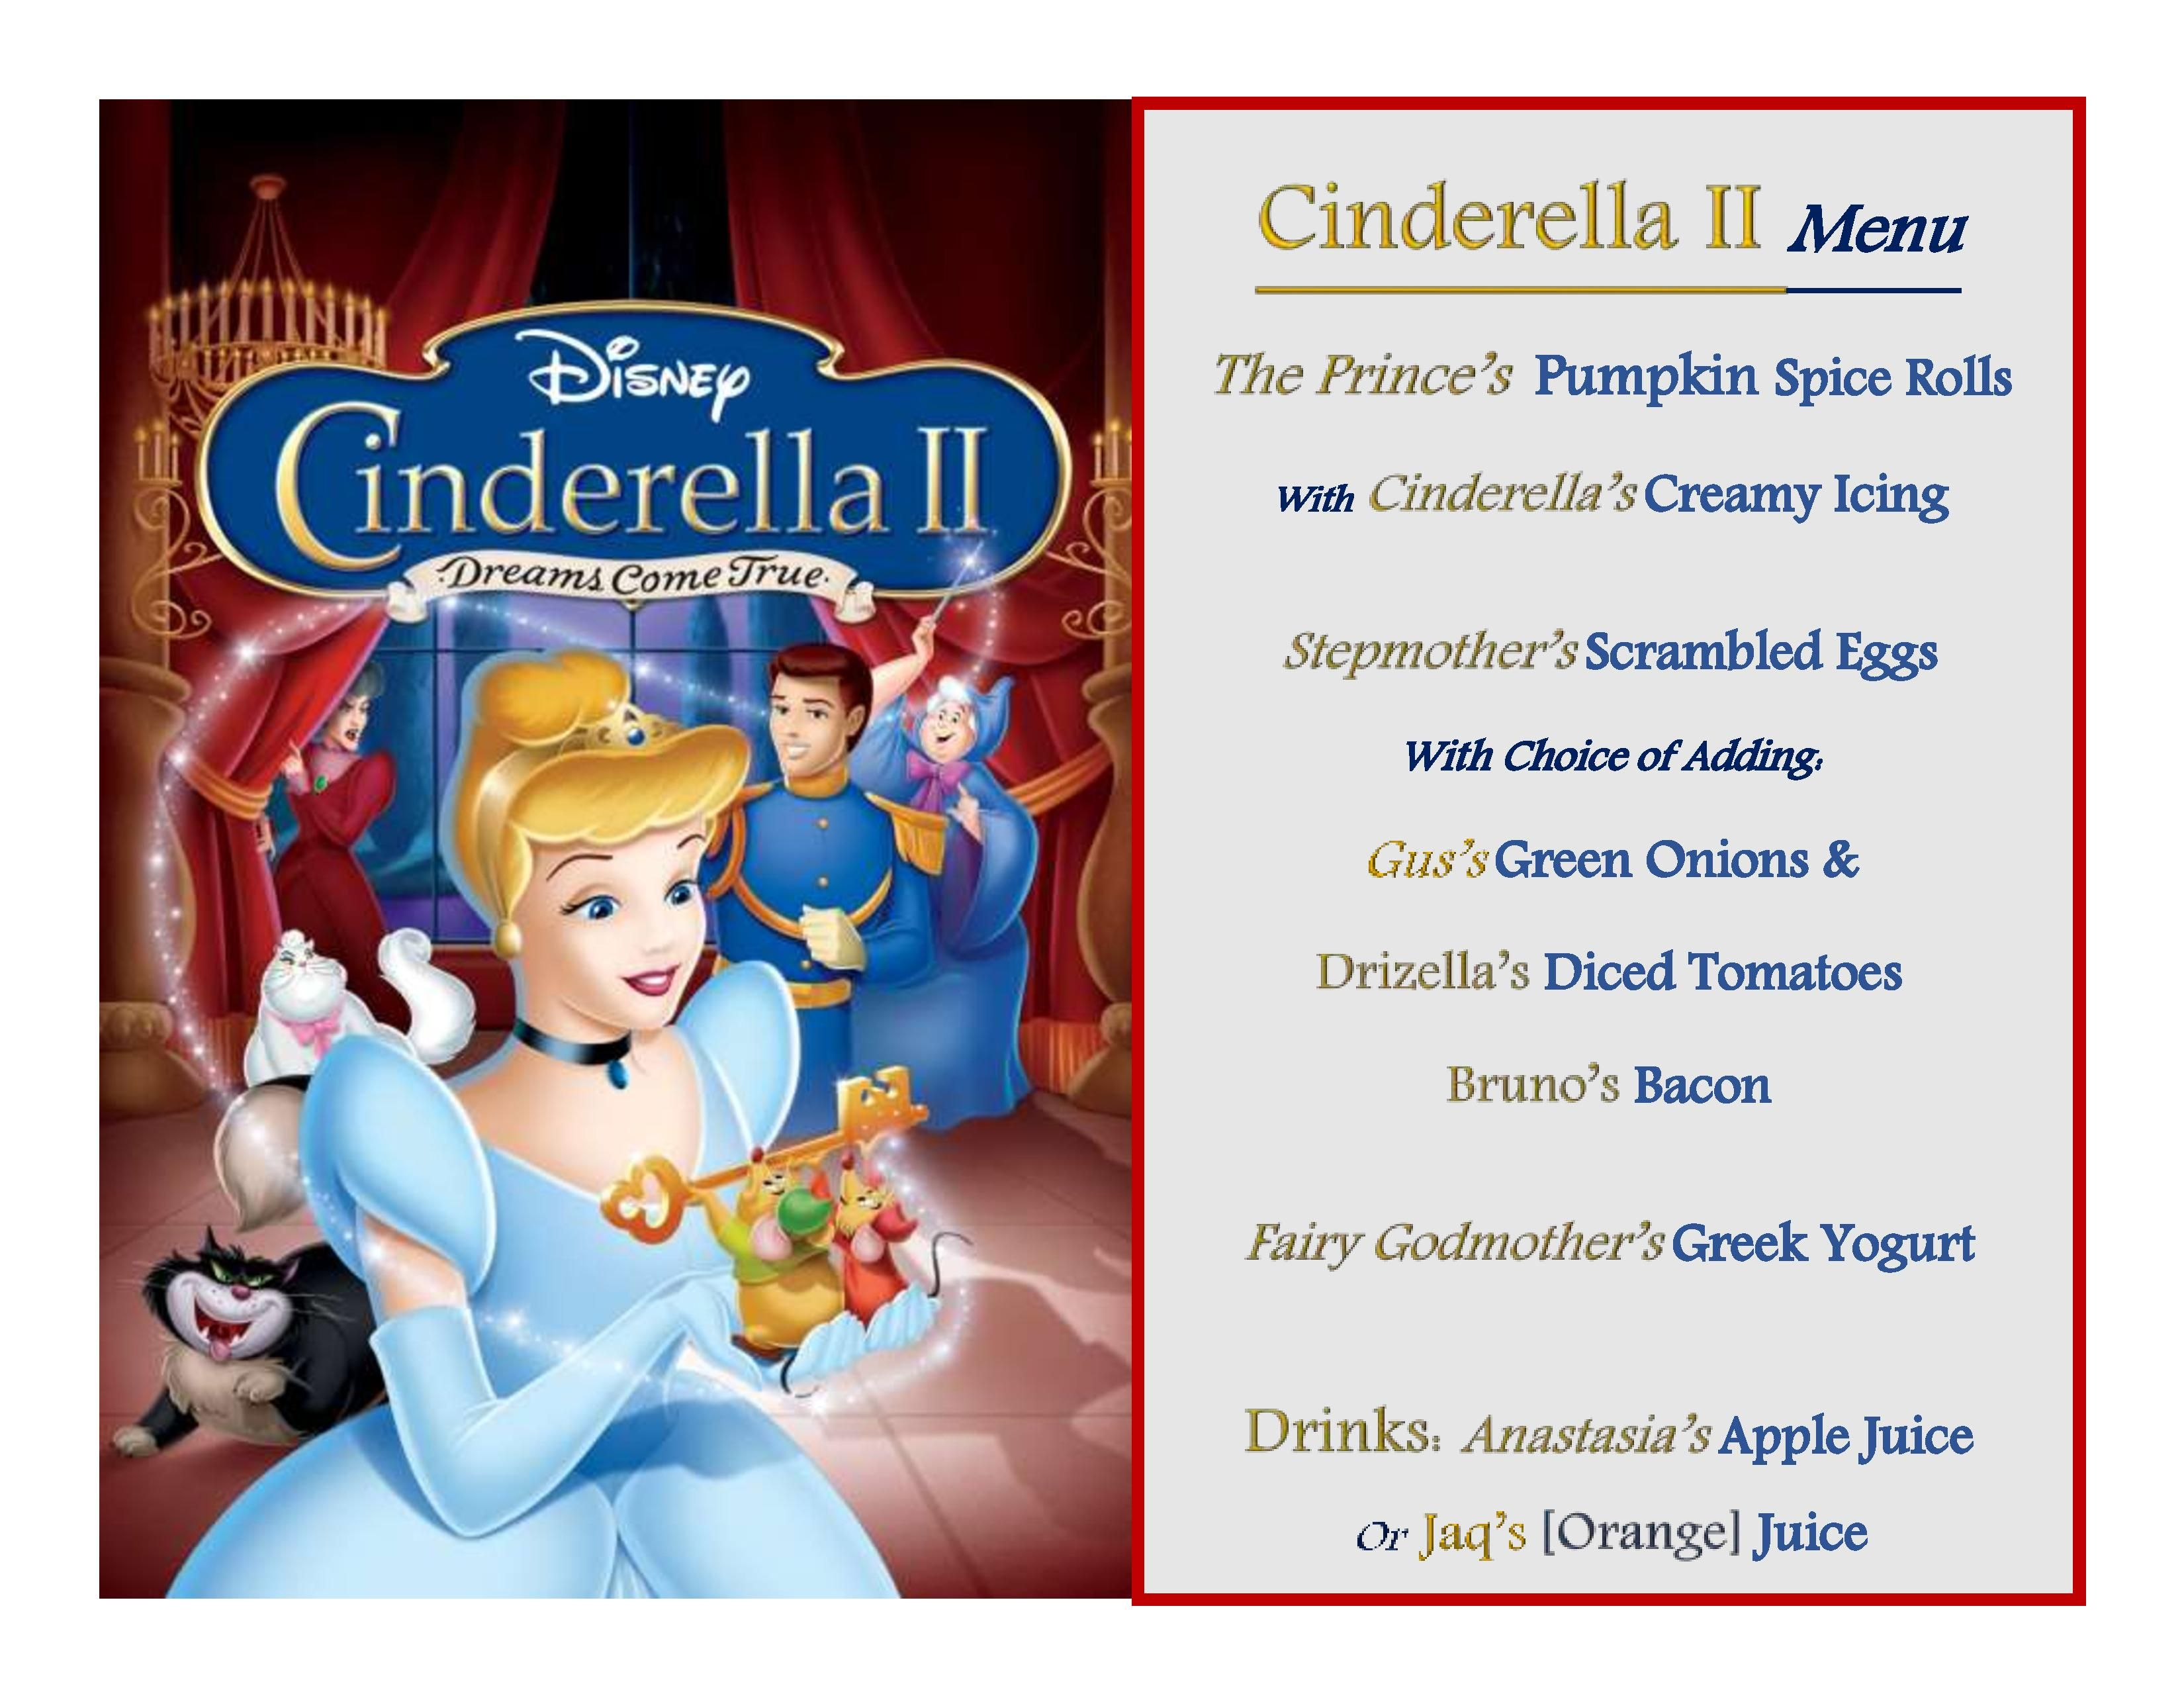 Tonies Disneys Cinderella